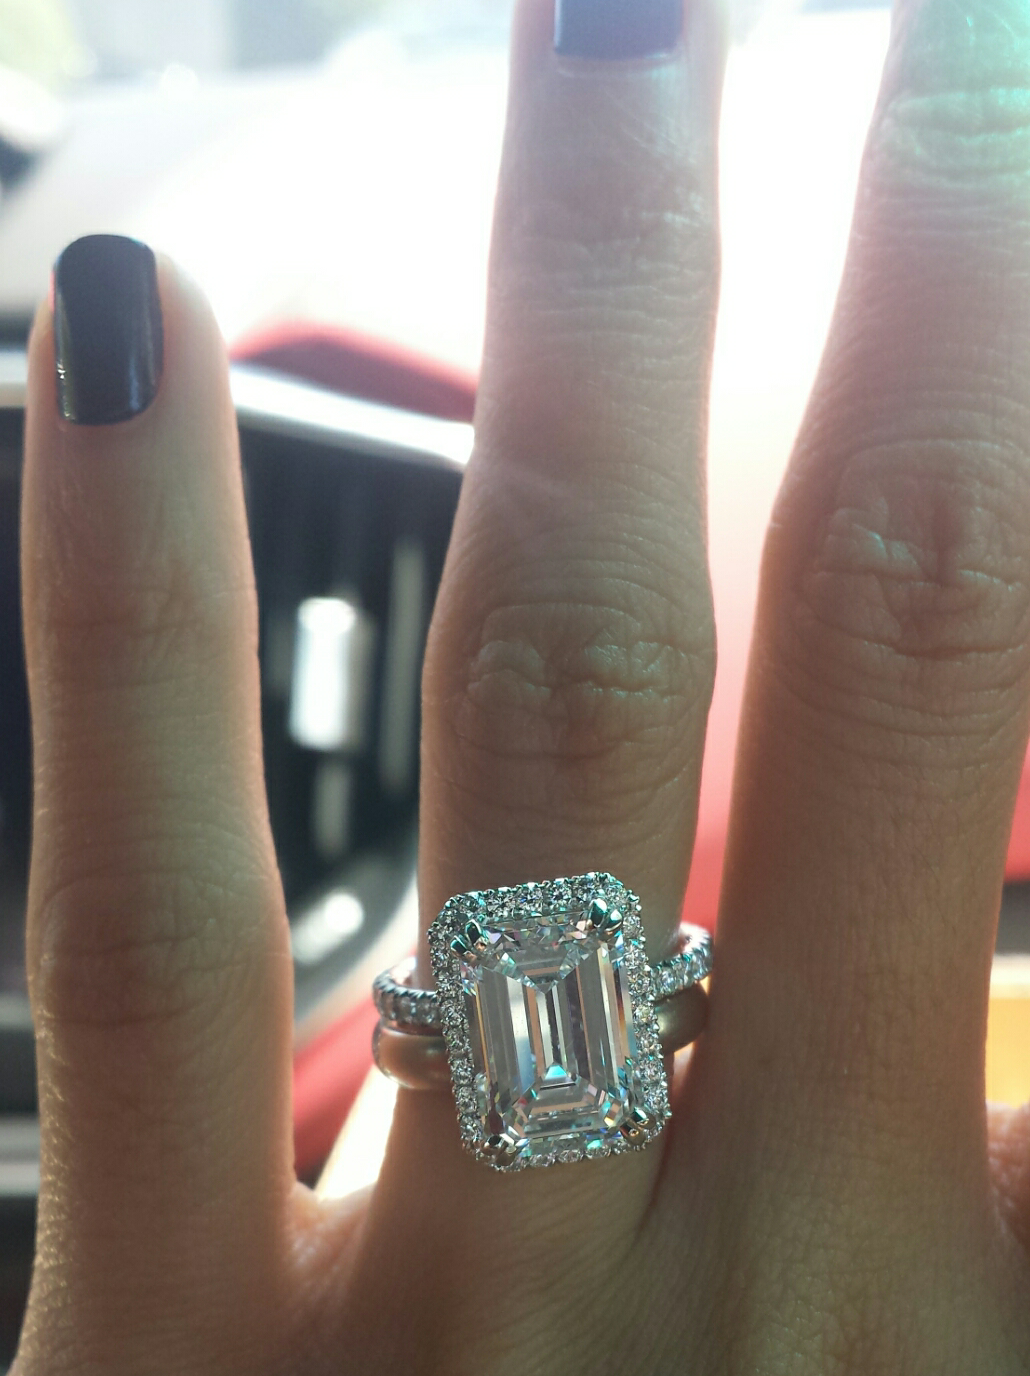 3 carat emerald cut on size 4 finger update Weddingbee Wedding